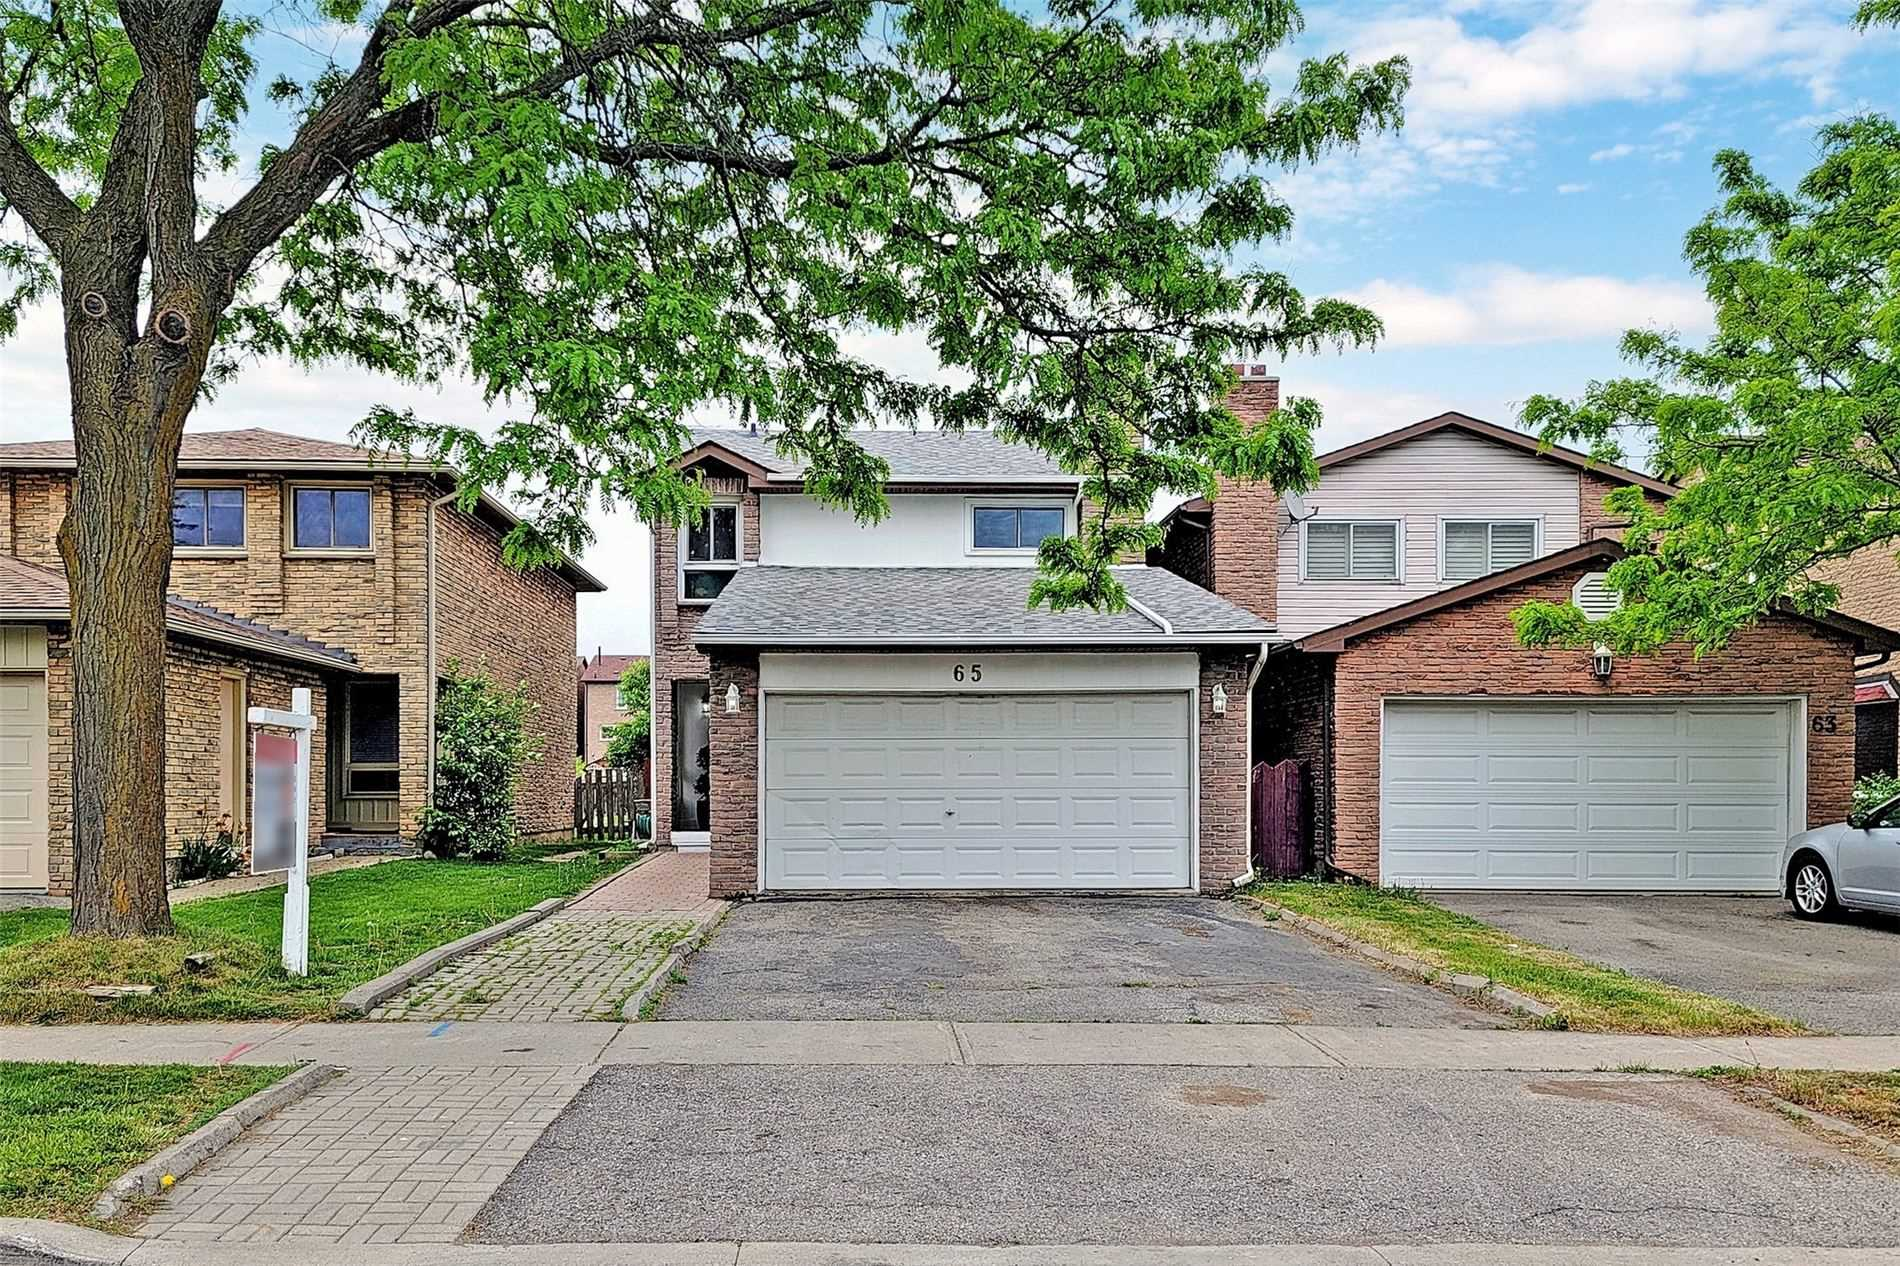 pictures of house for sale MLS: N5250859 located at 65 Carey Cres, Markham L3R3E6